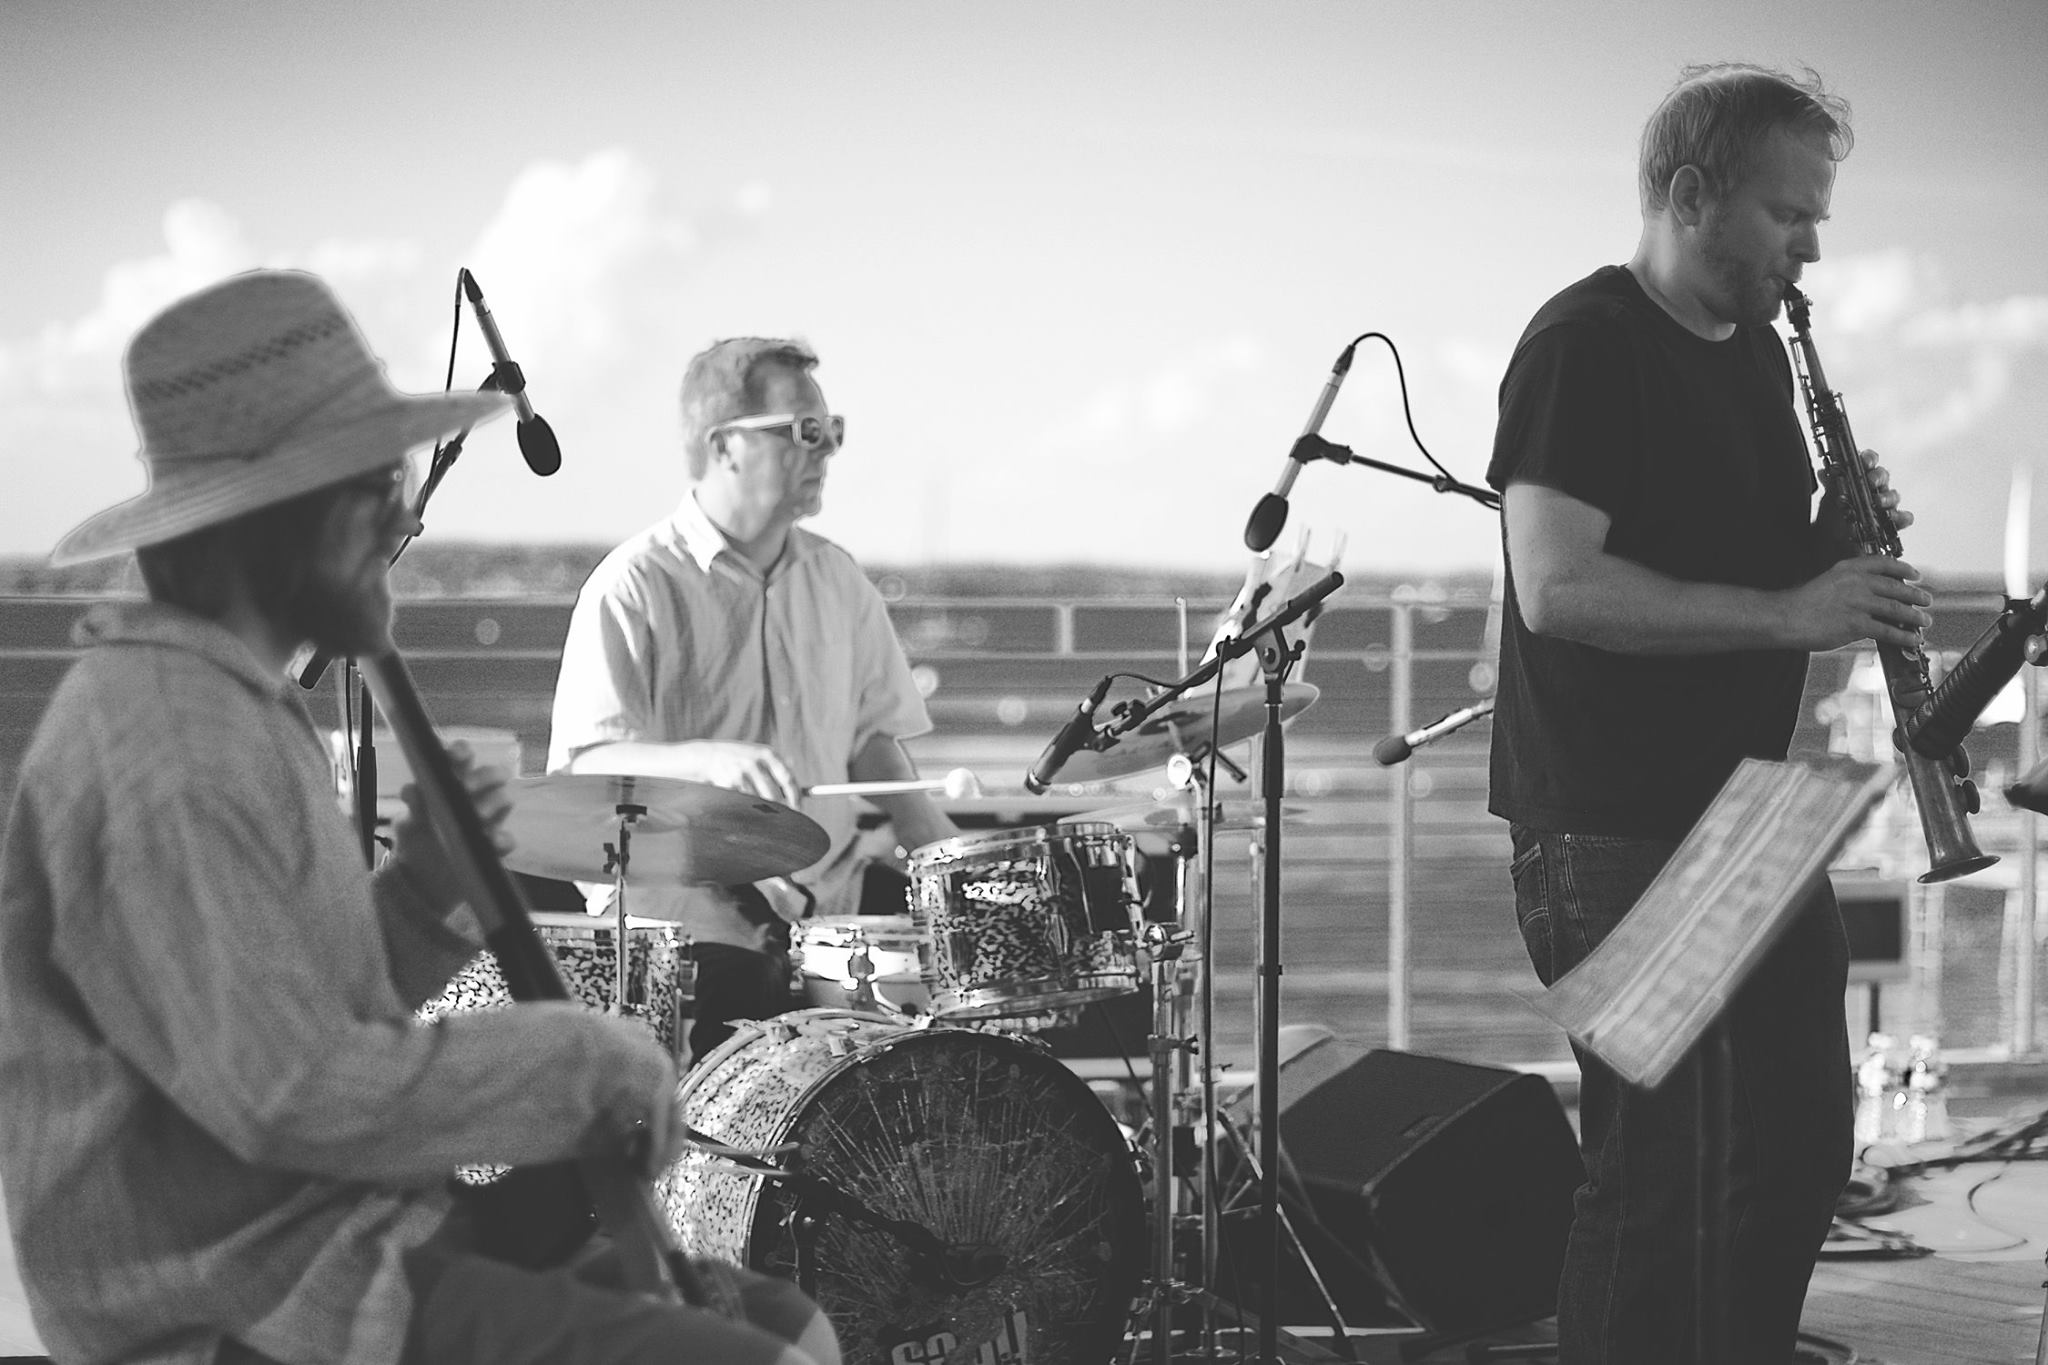 Brennan Connors and Stray Passage at UW Terrace photo by Jeff Alexander